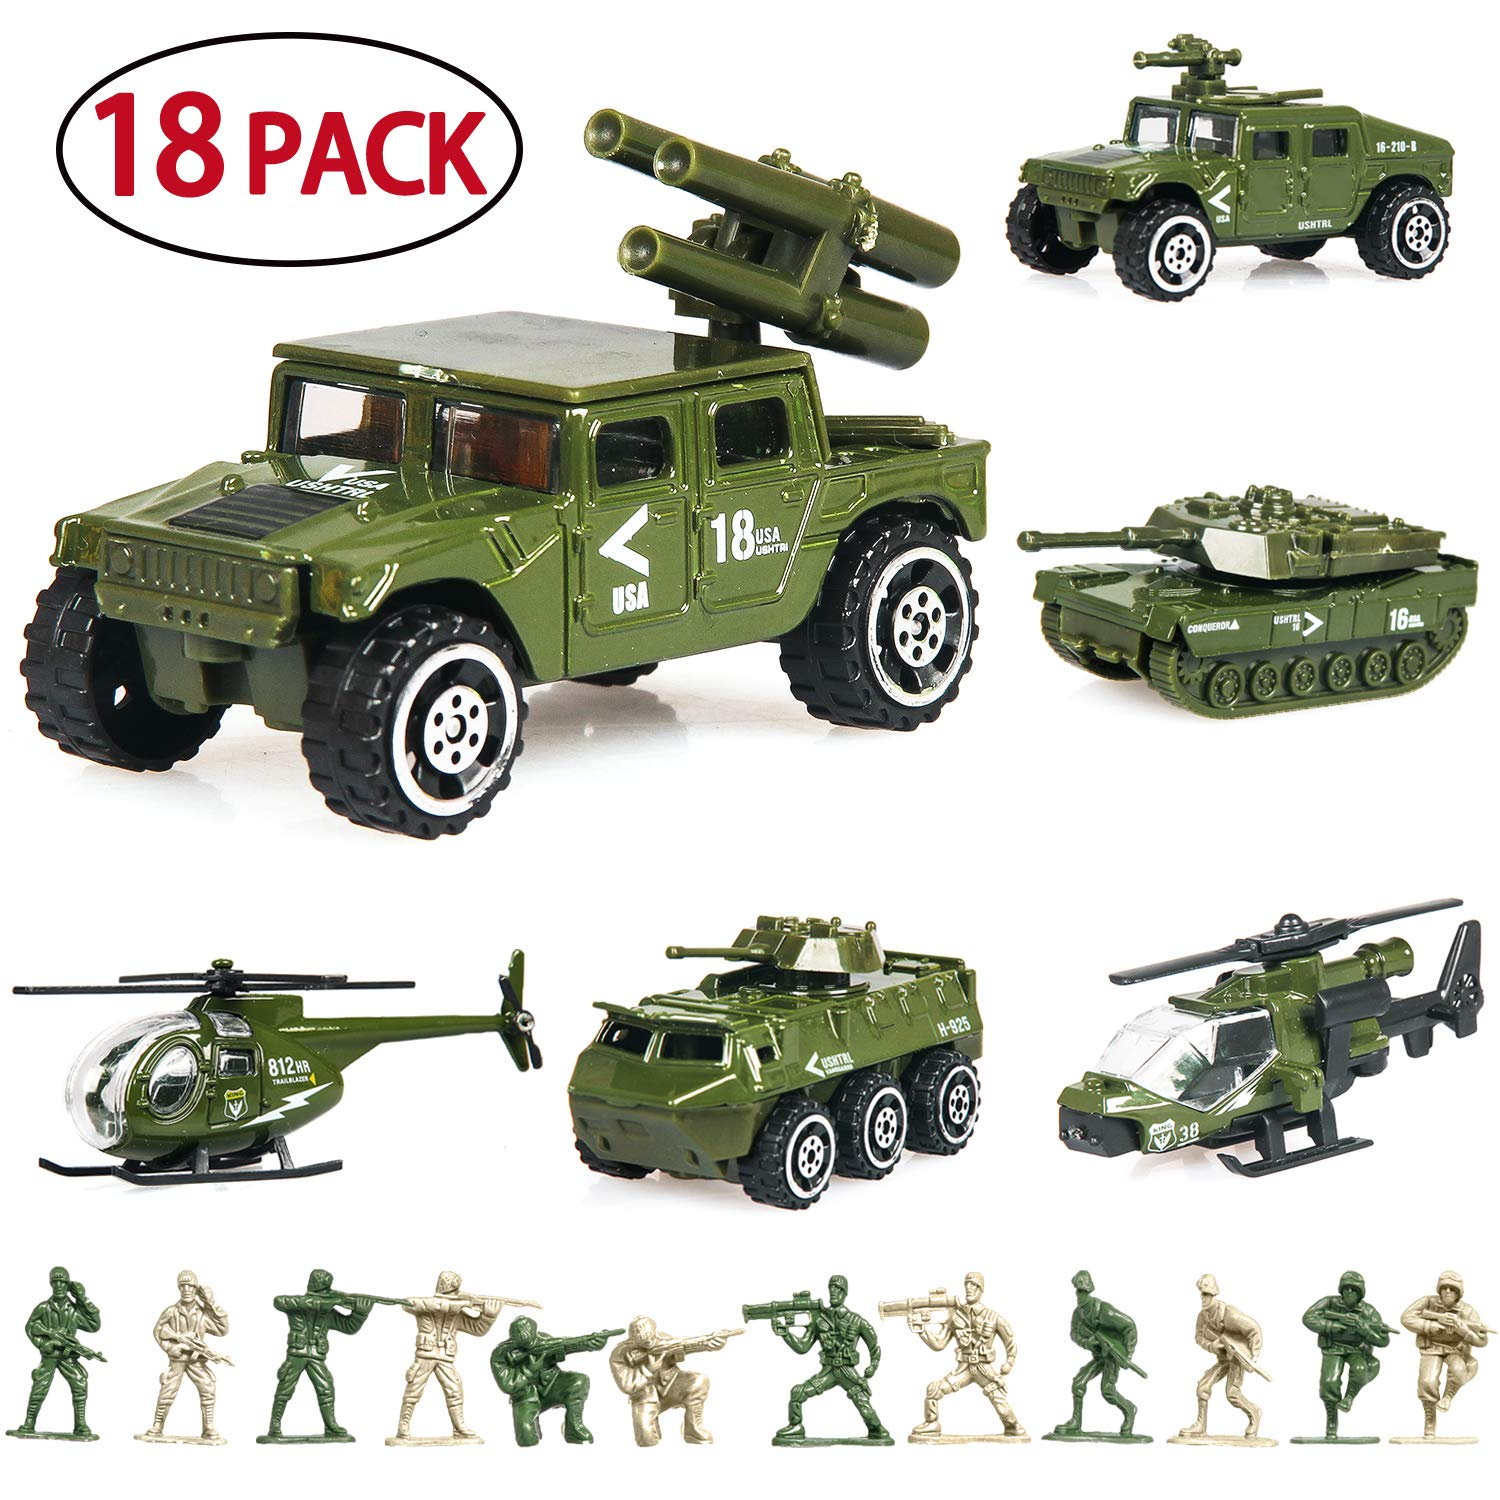 18 Pack Die-cast Military Vehicles Sets